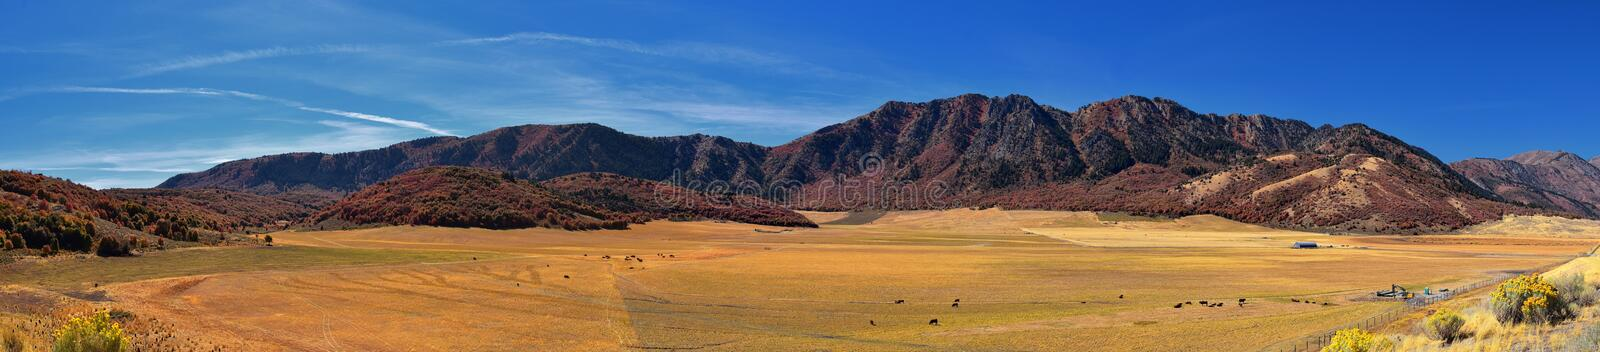 Box Elder Canyon landscape views, popularly known as Sardine Canyon, North of Brigham City within the western slopes of the Wellsv. Ille Mountains, by Logan in royalty free stock image